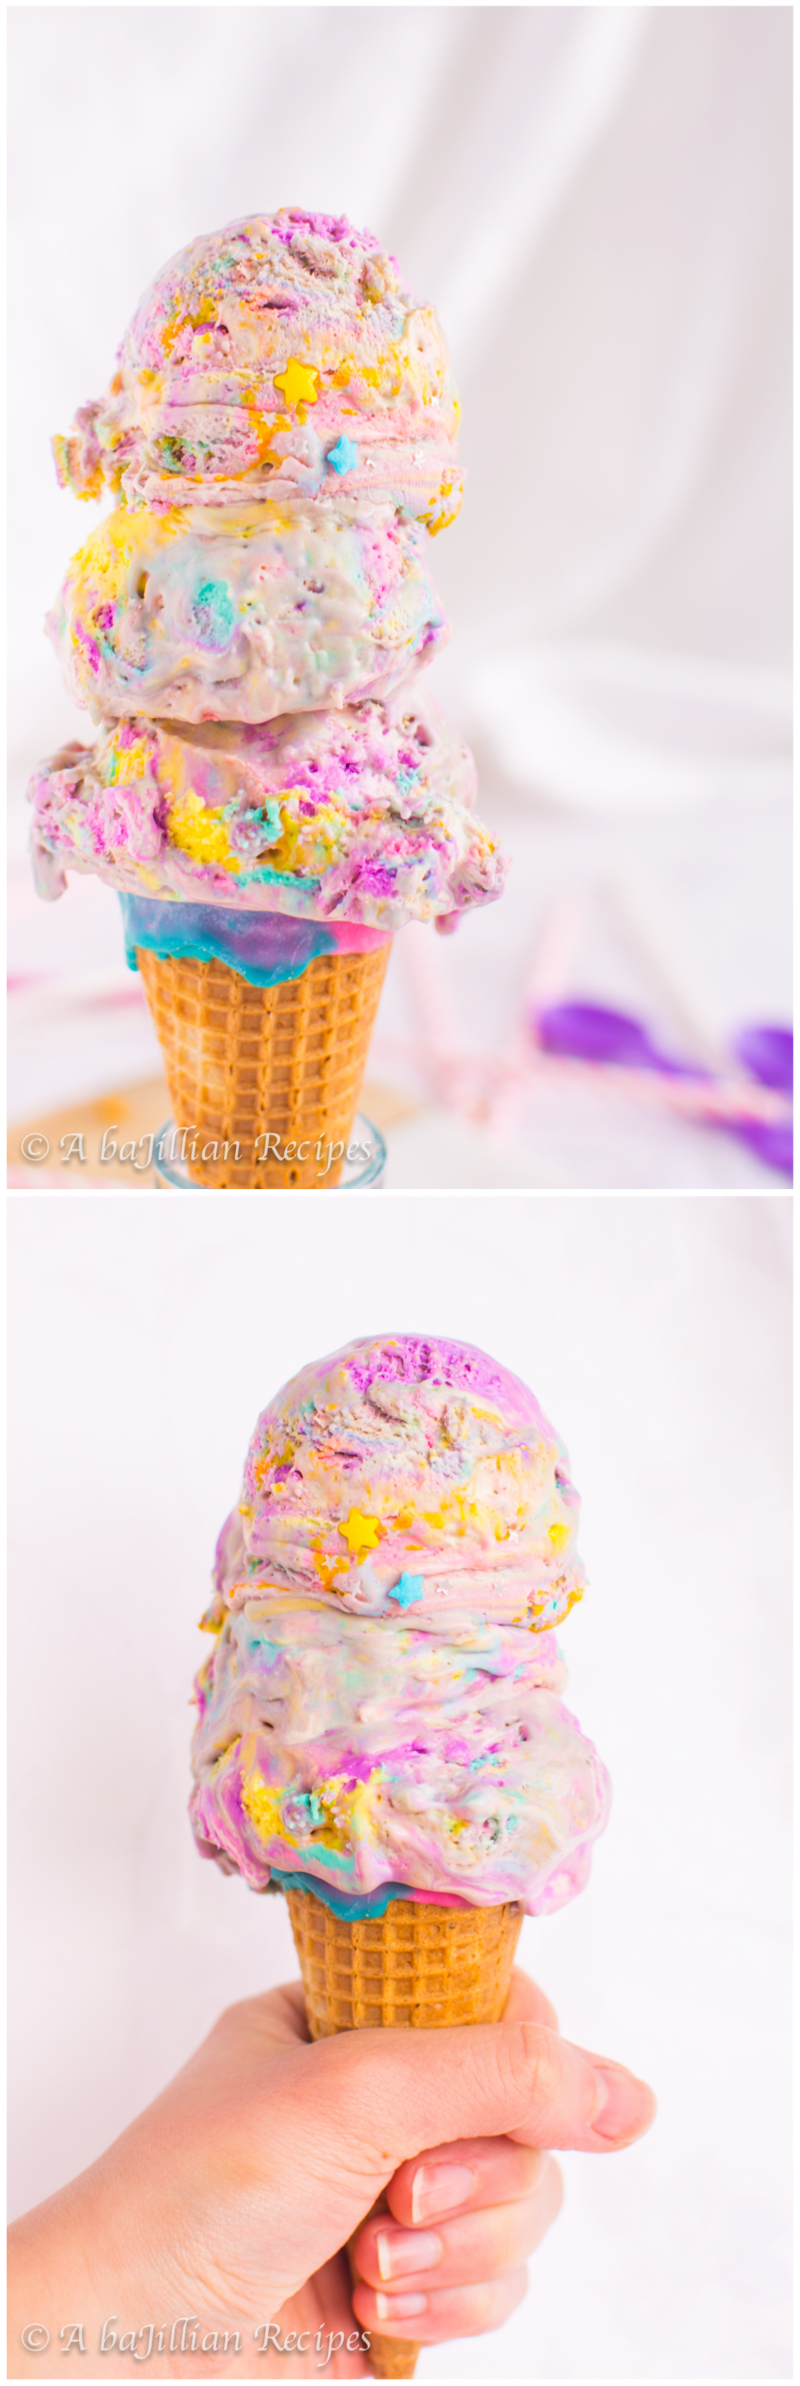 Unicorn Ice Cream | A baJillian Recipes1